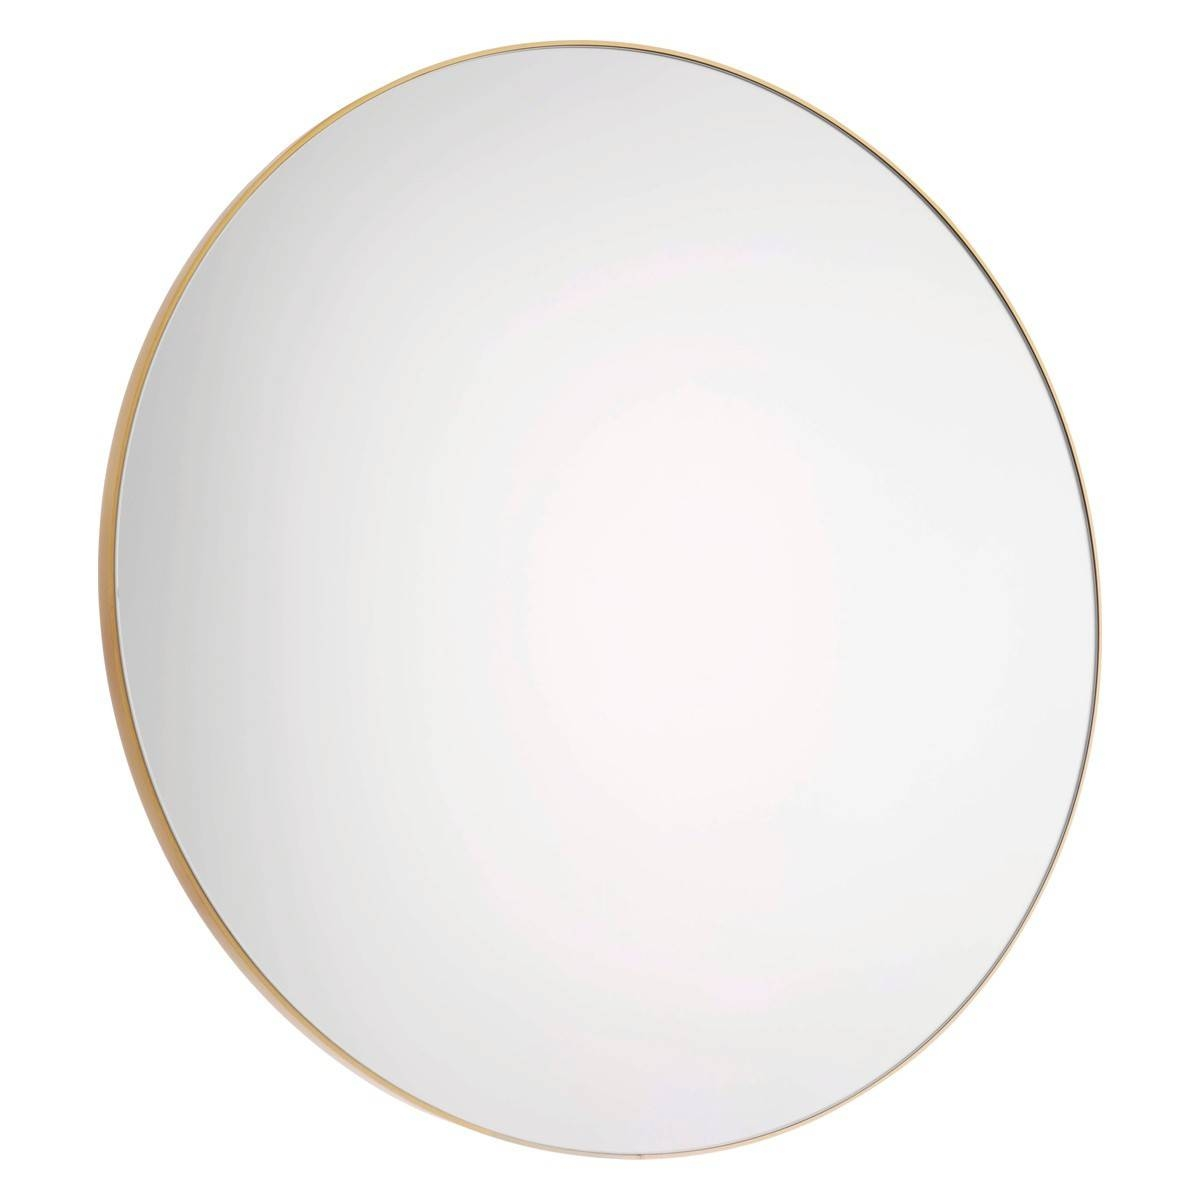 Patsy Large Round Gold Wall Mirror D82Cm | Buy Now At Habitat Uk within Round Mirrors (Image 7 of 15)